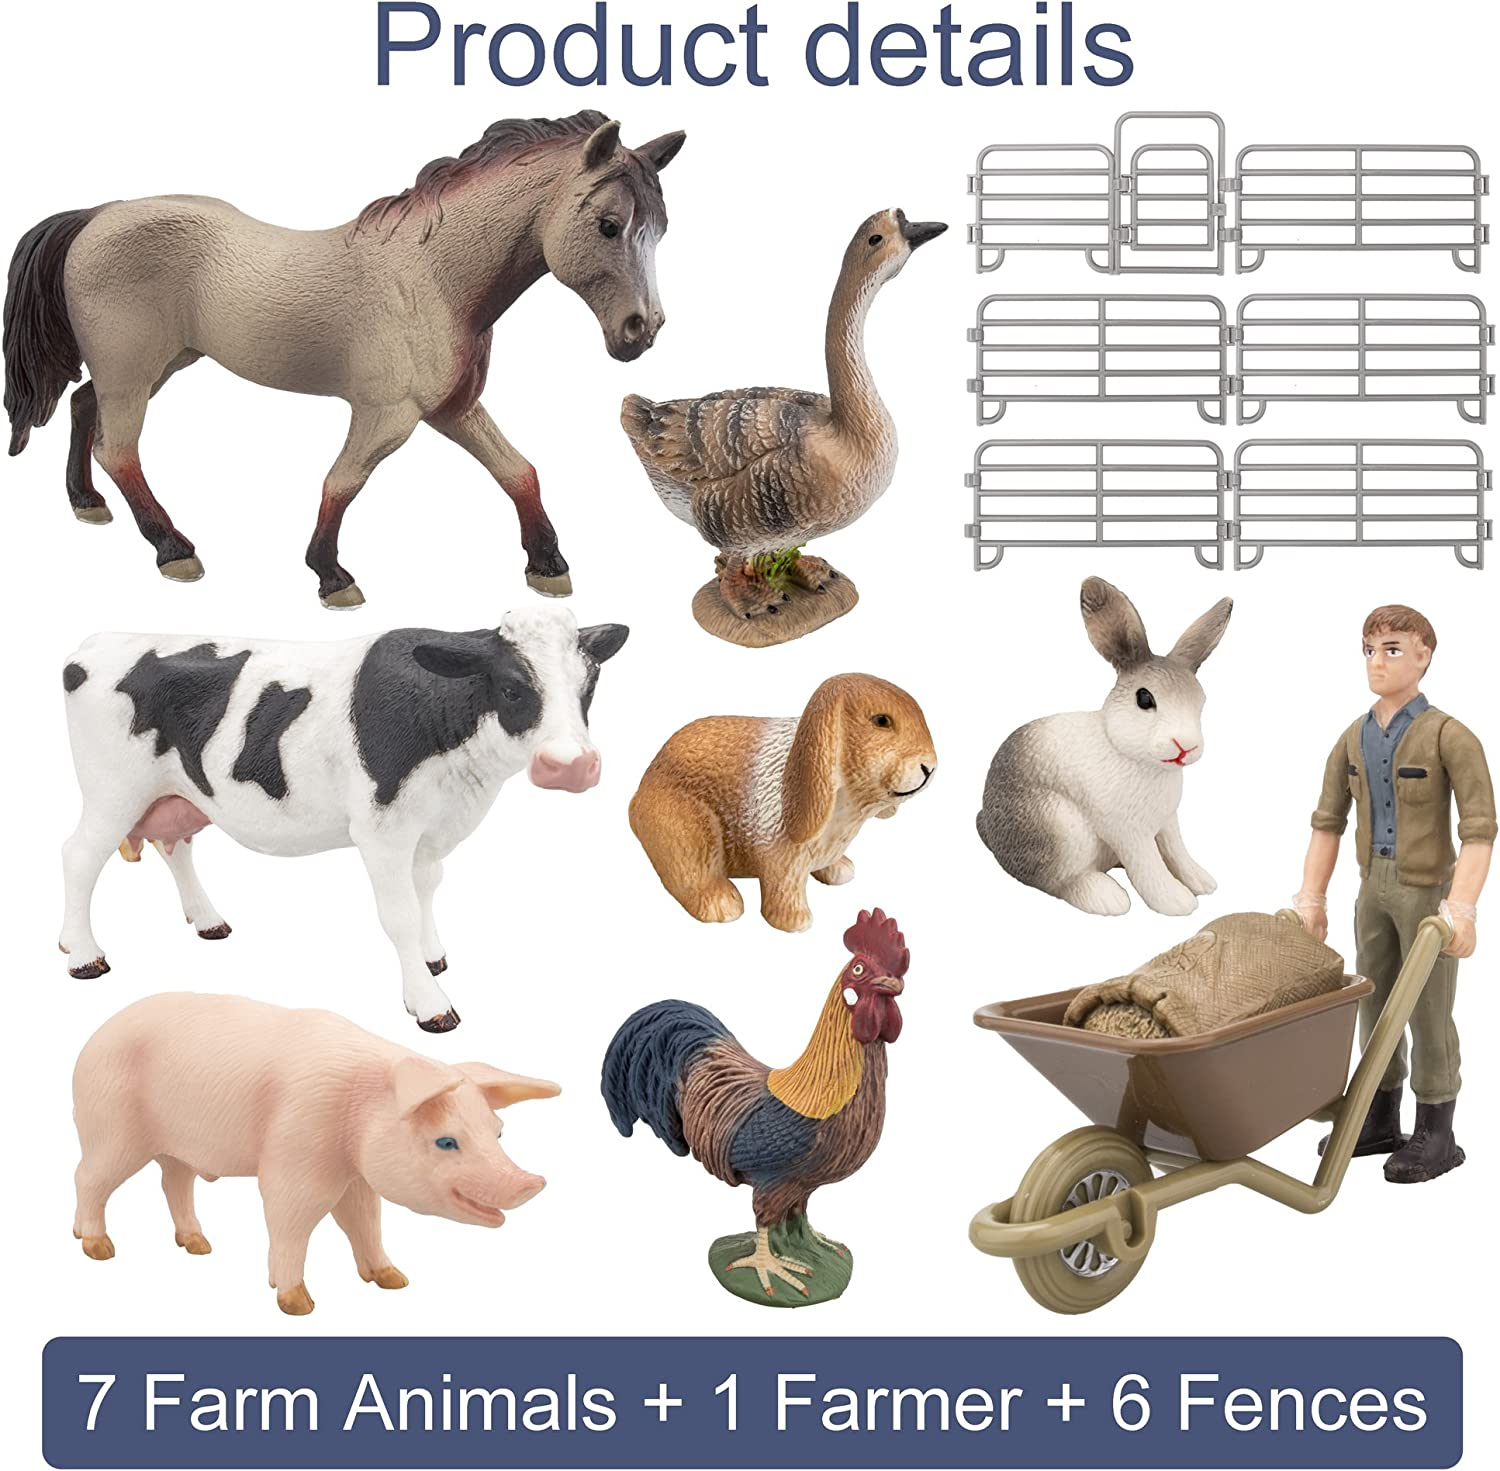 DOYIFun Realistic Farm Pig Model Figures Toy Set Set of 5 Miniature Pig Family Figurines Collection Playset Farm Meadows Pasture Horse Statues Preschool Educational Learn Cognitive Toys